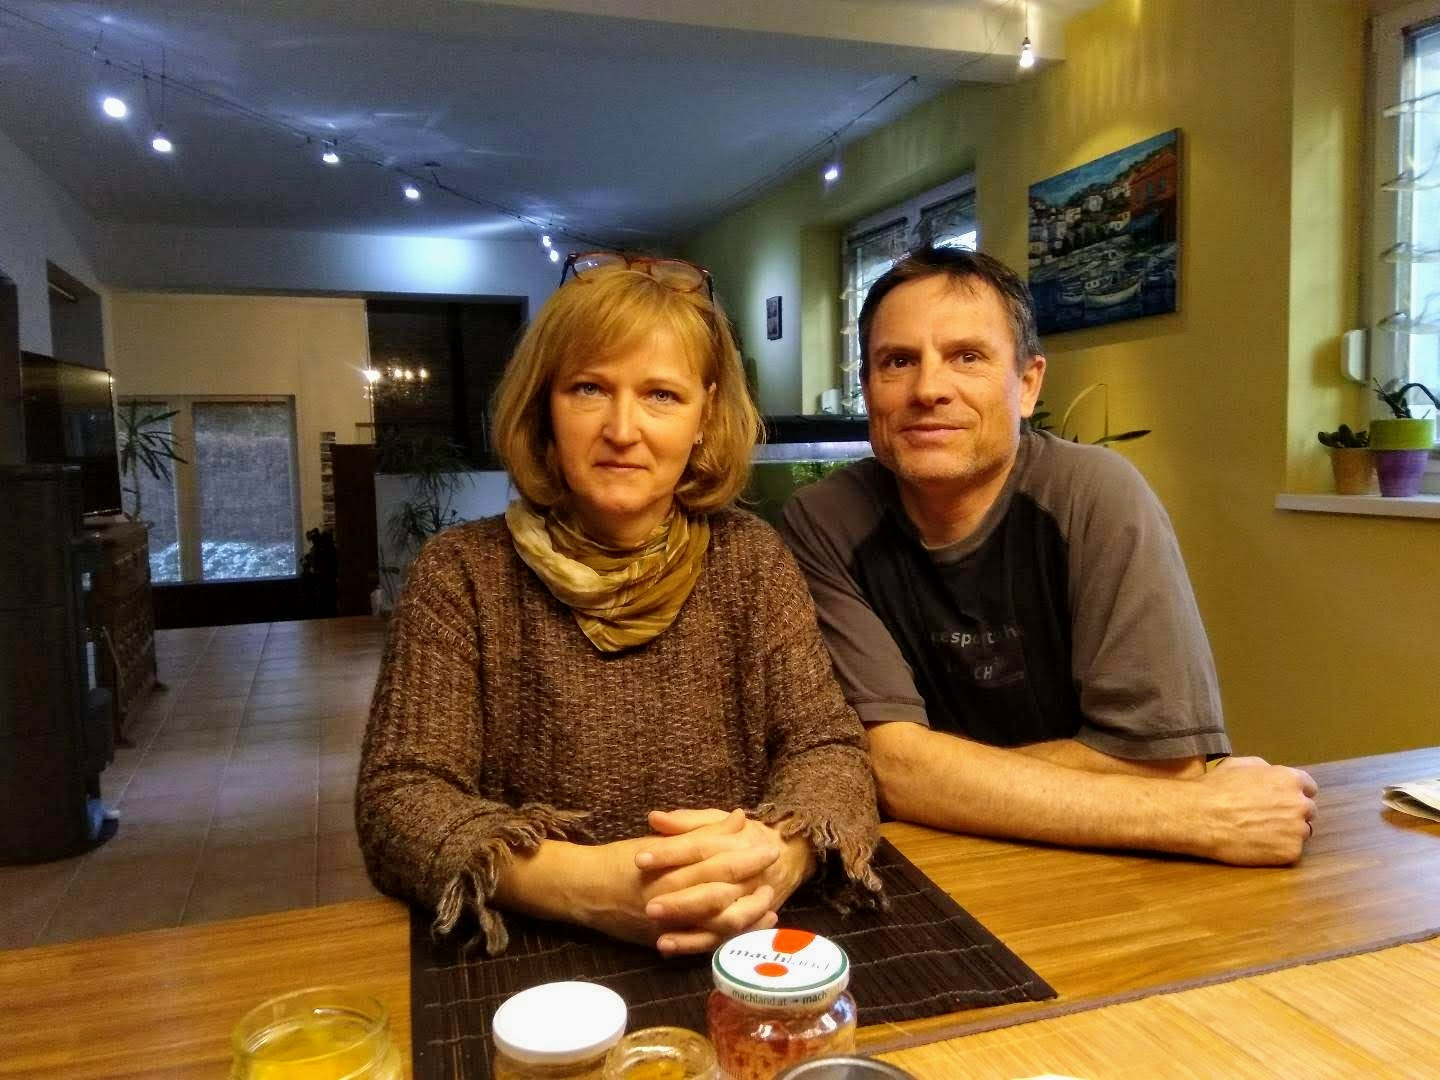 famille d'accueil couchsurfing